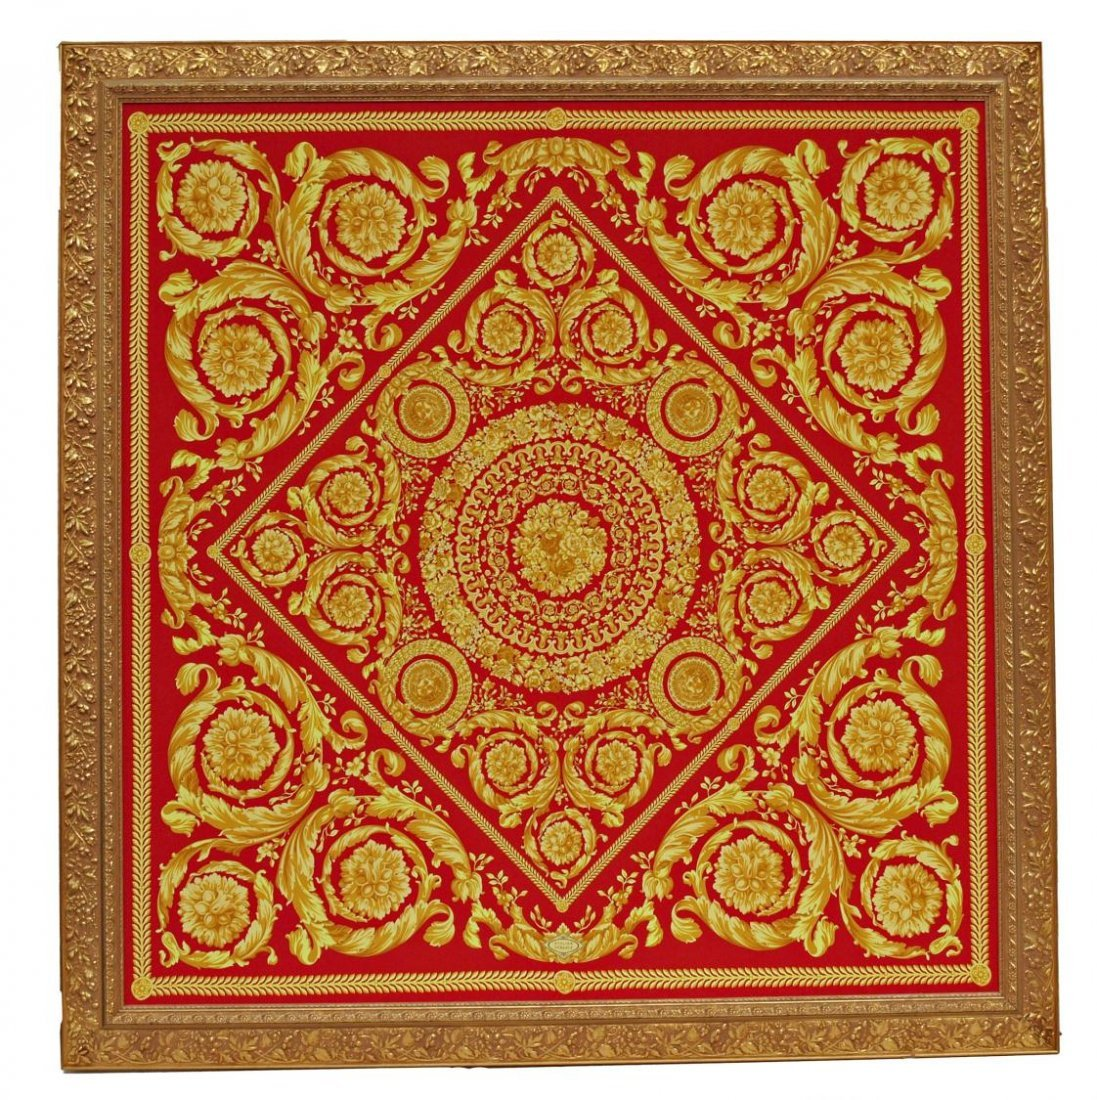 519: LARGE FRAMED VERSACE FABRIC WALL HANGING